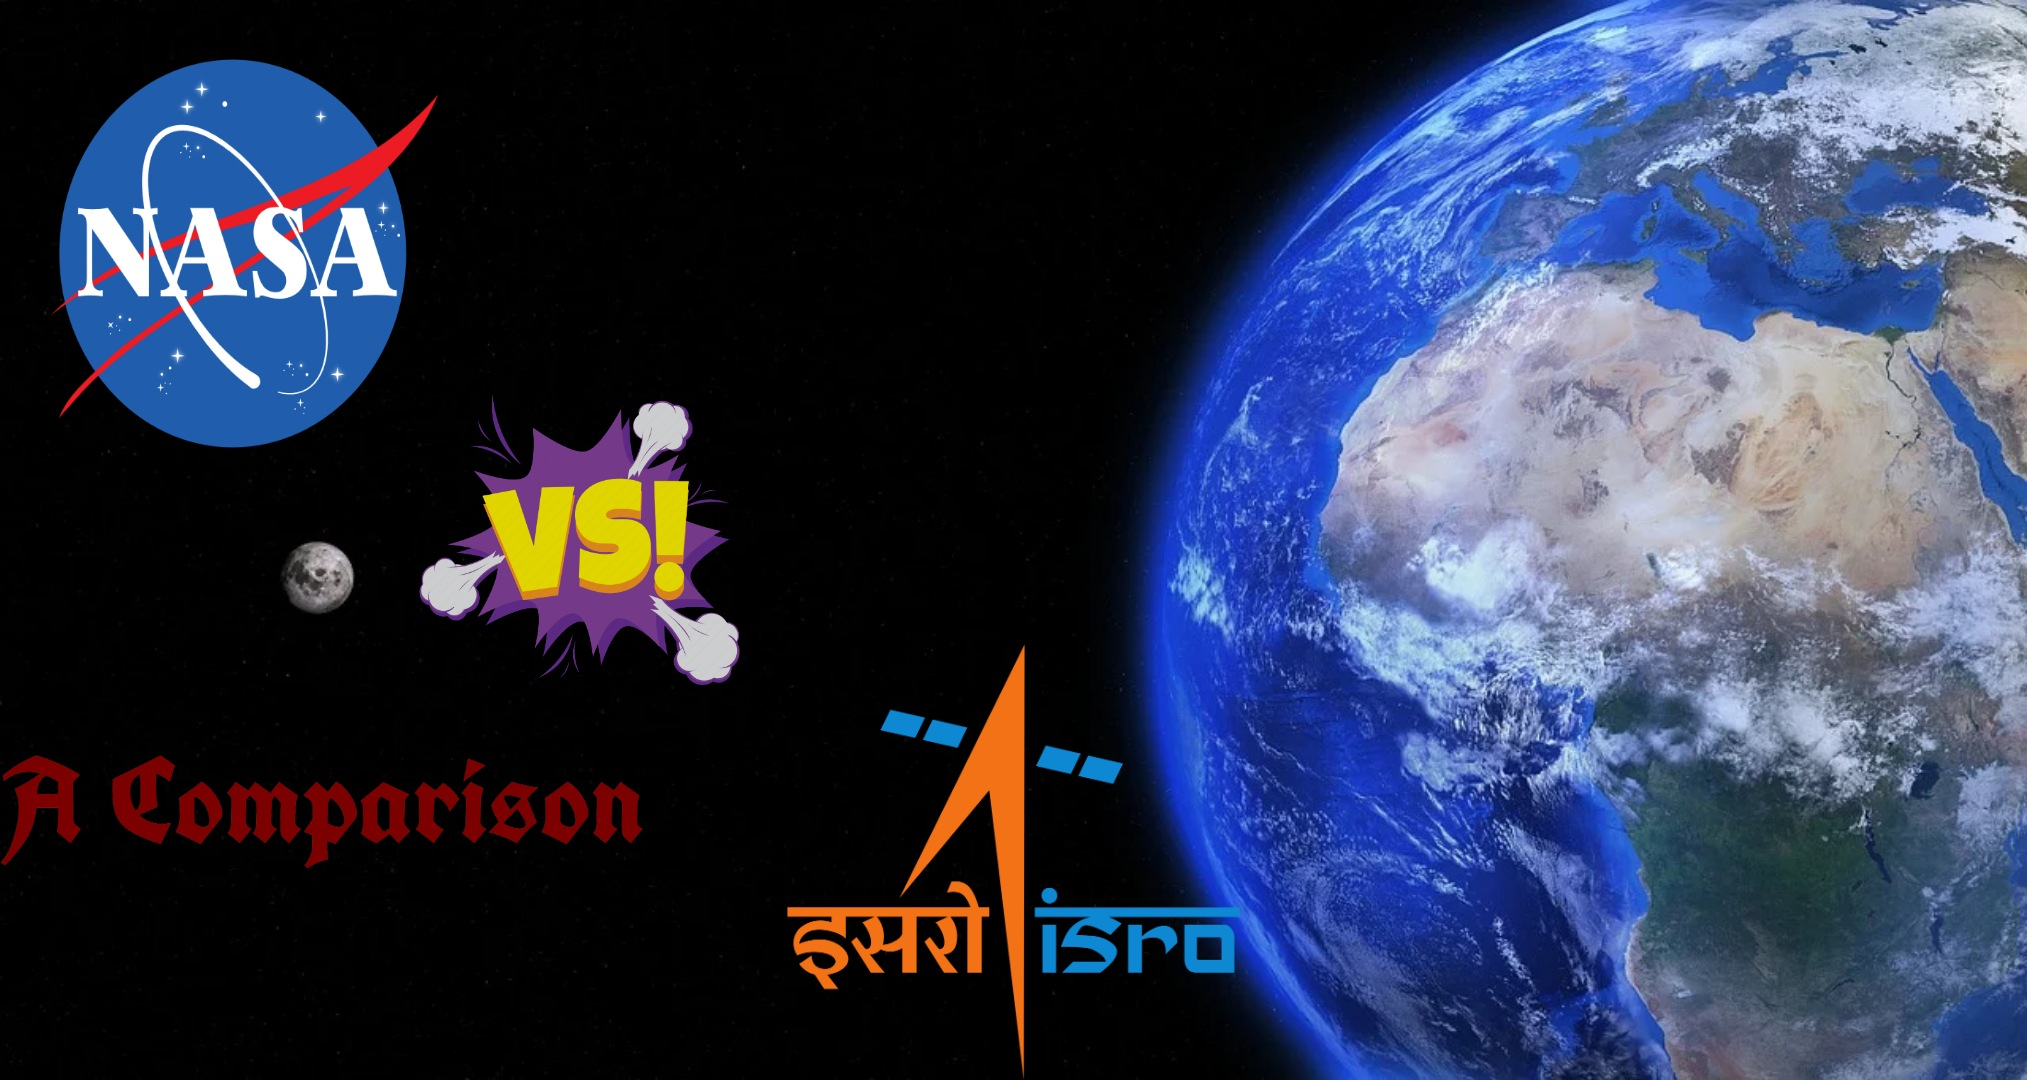 Nasa vs isro